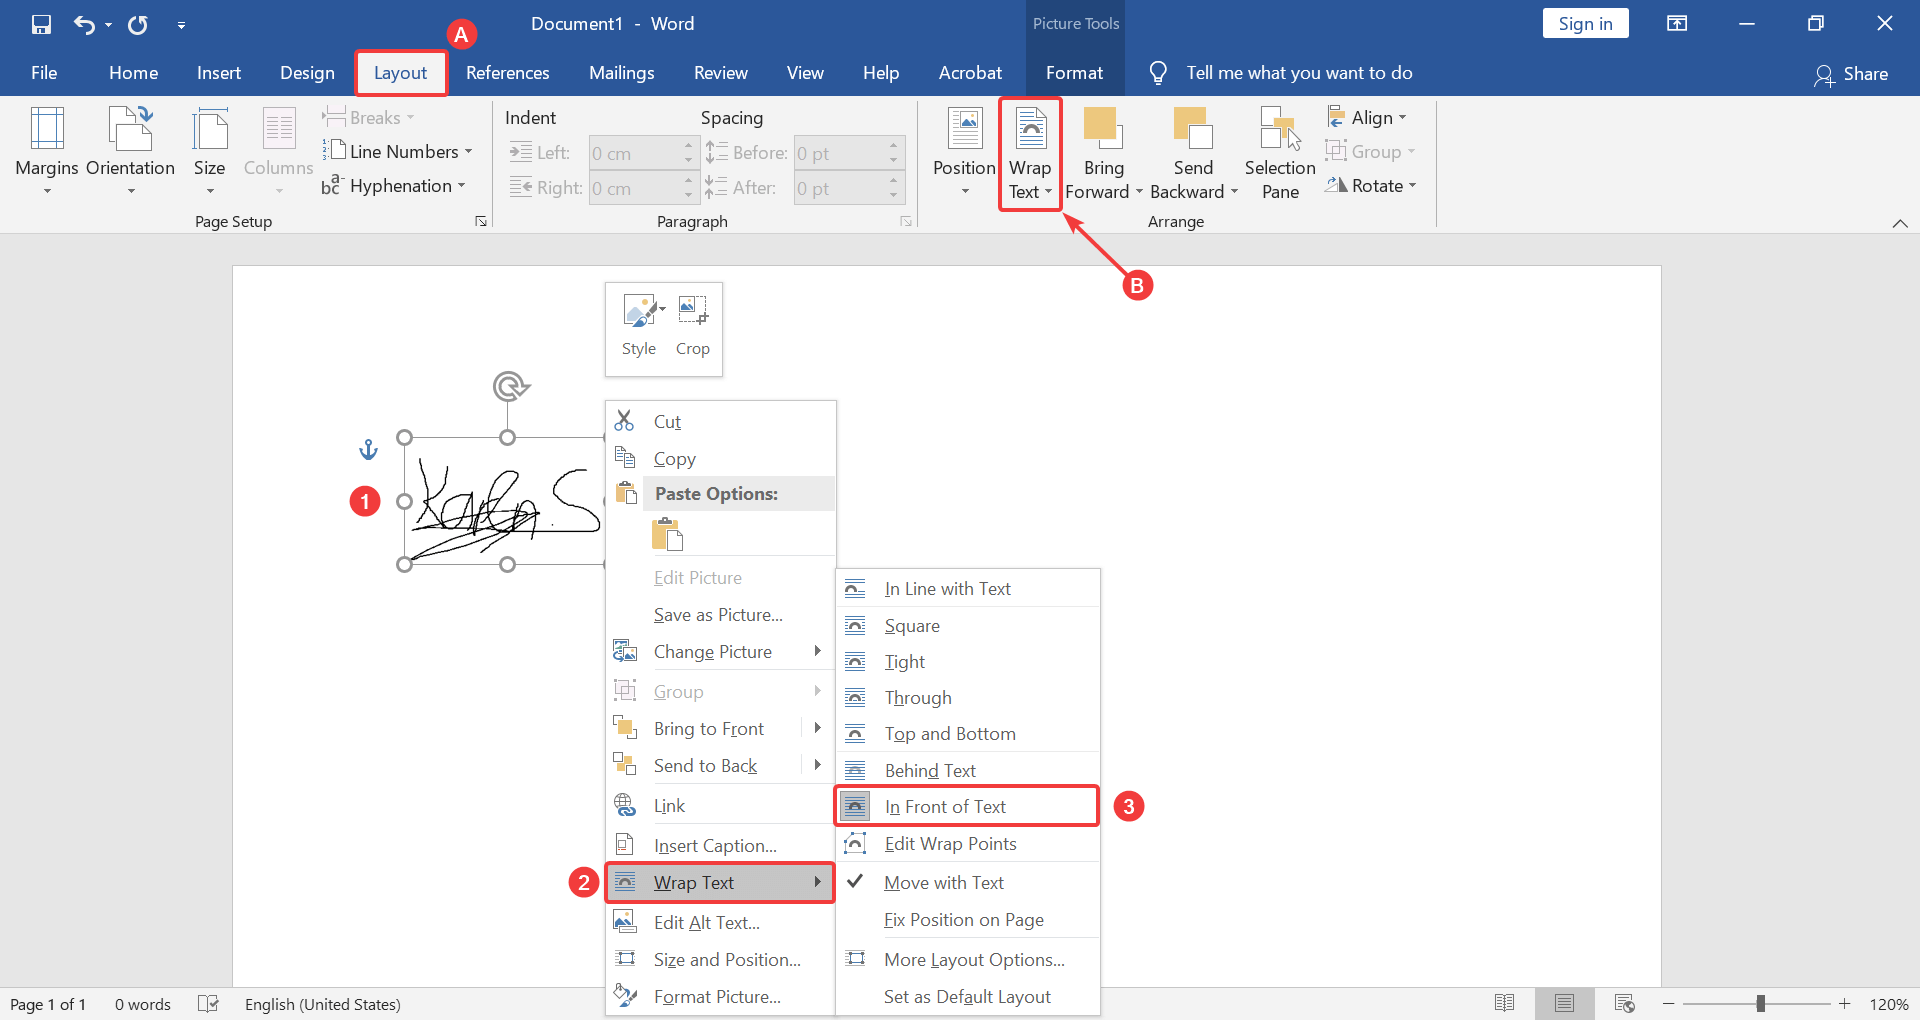 How to change the layout of the signature picture